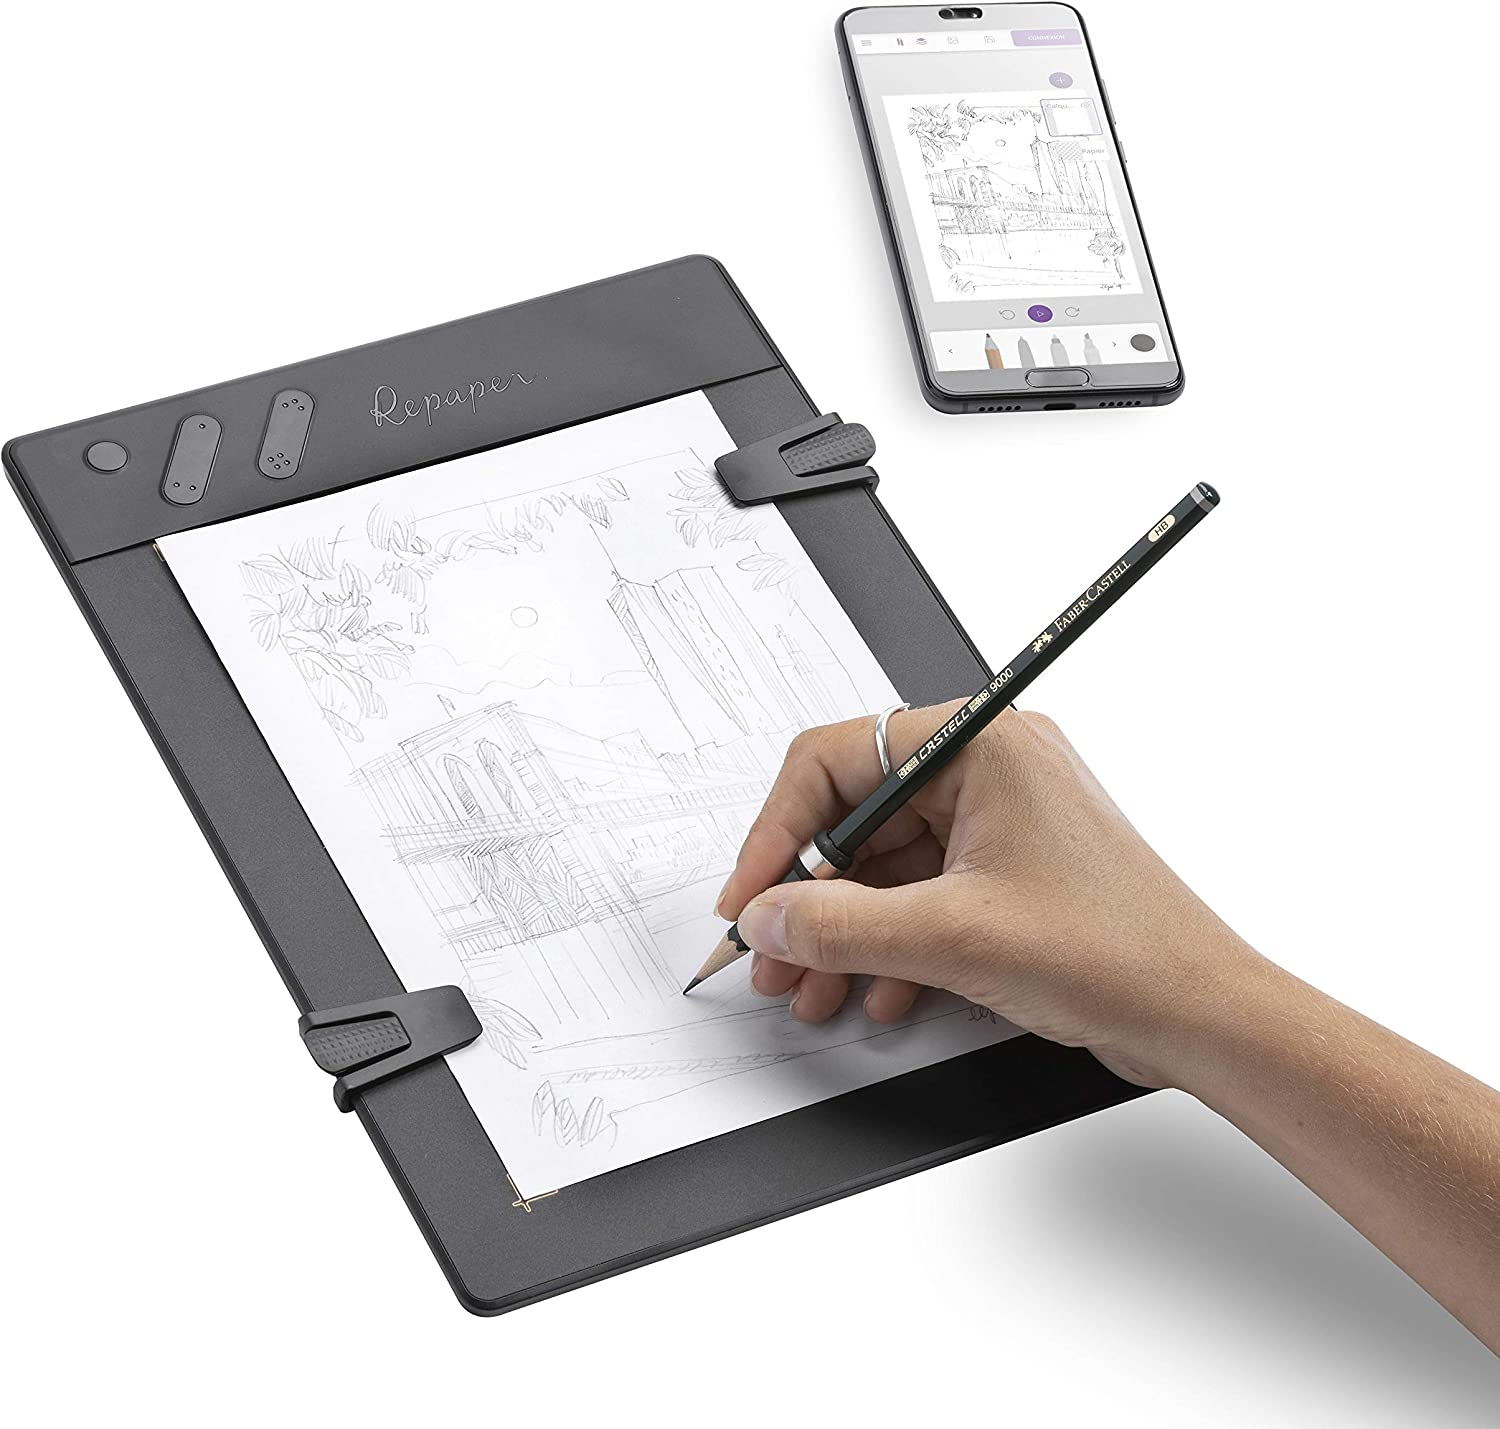 iskn Repaper - Pencil & Paper Graphic Tablet with 8192 Pressure Levels - Faber-Castell Limited Edition